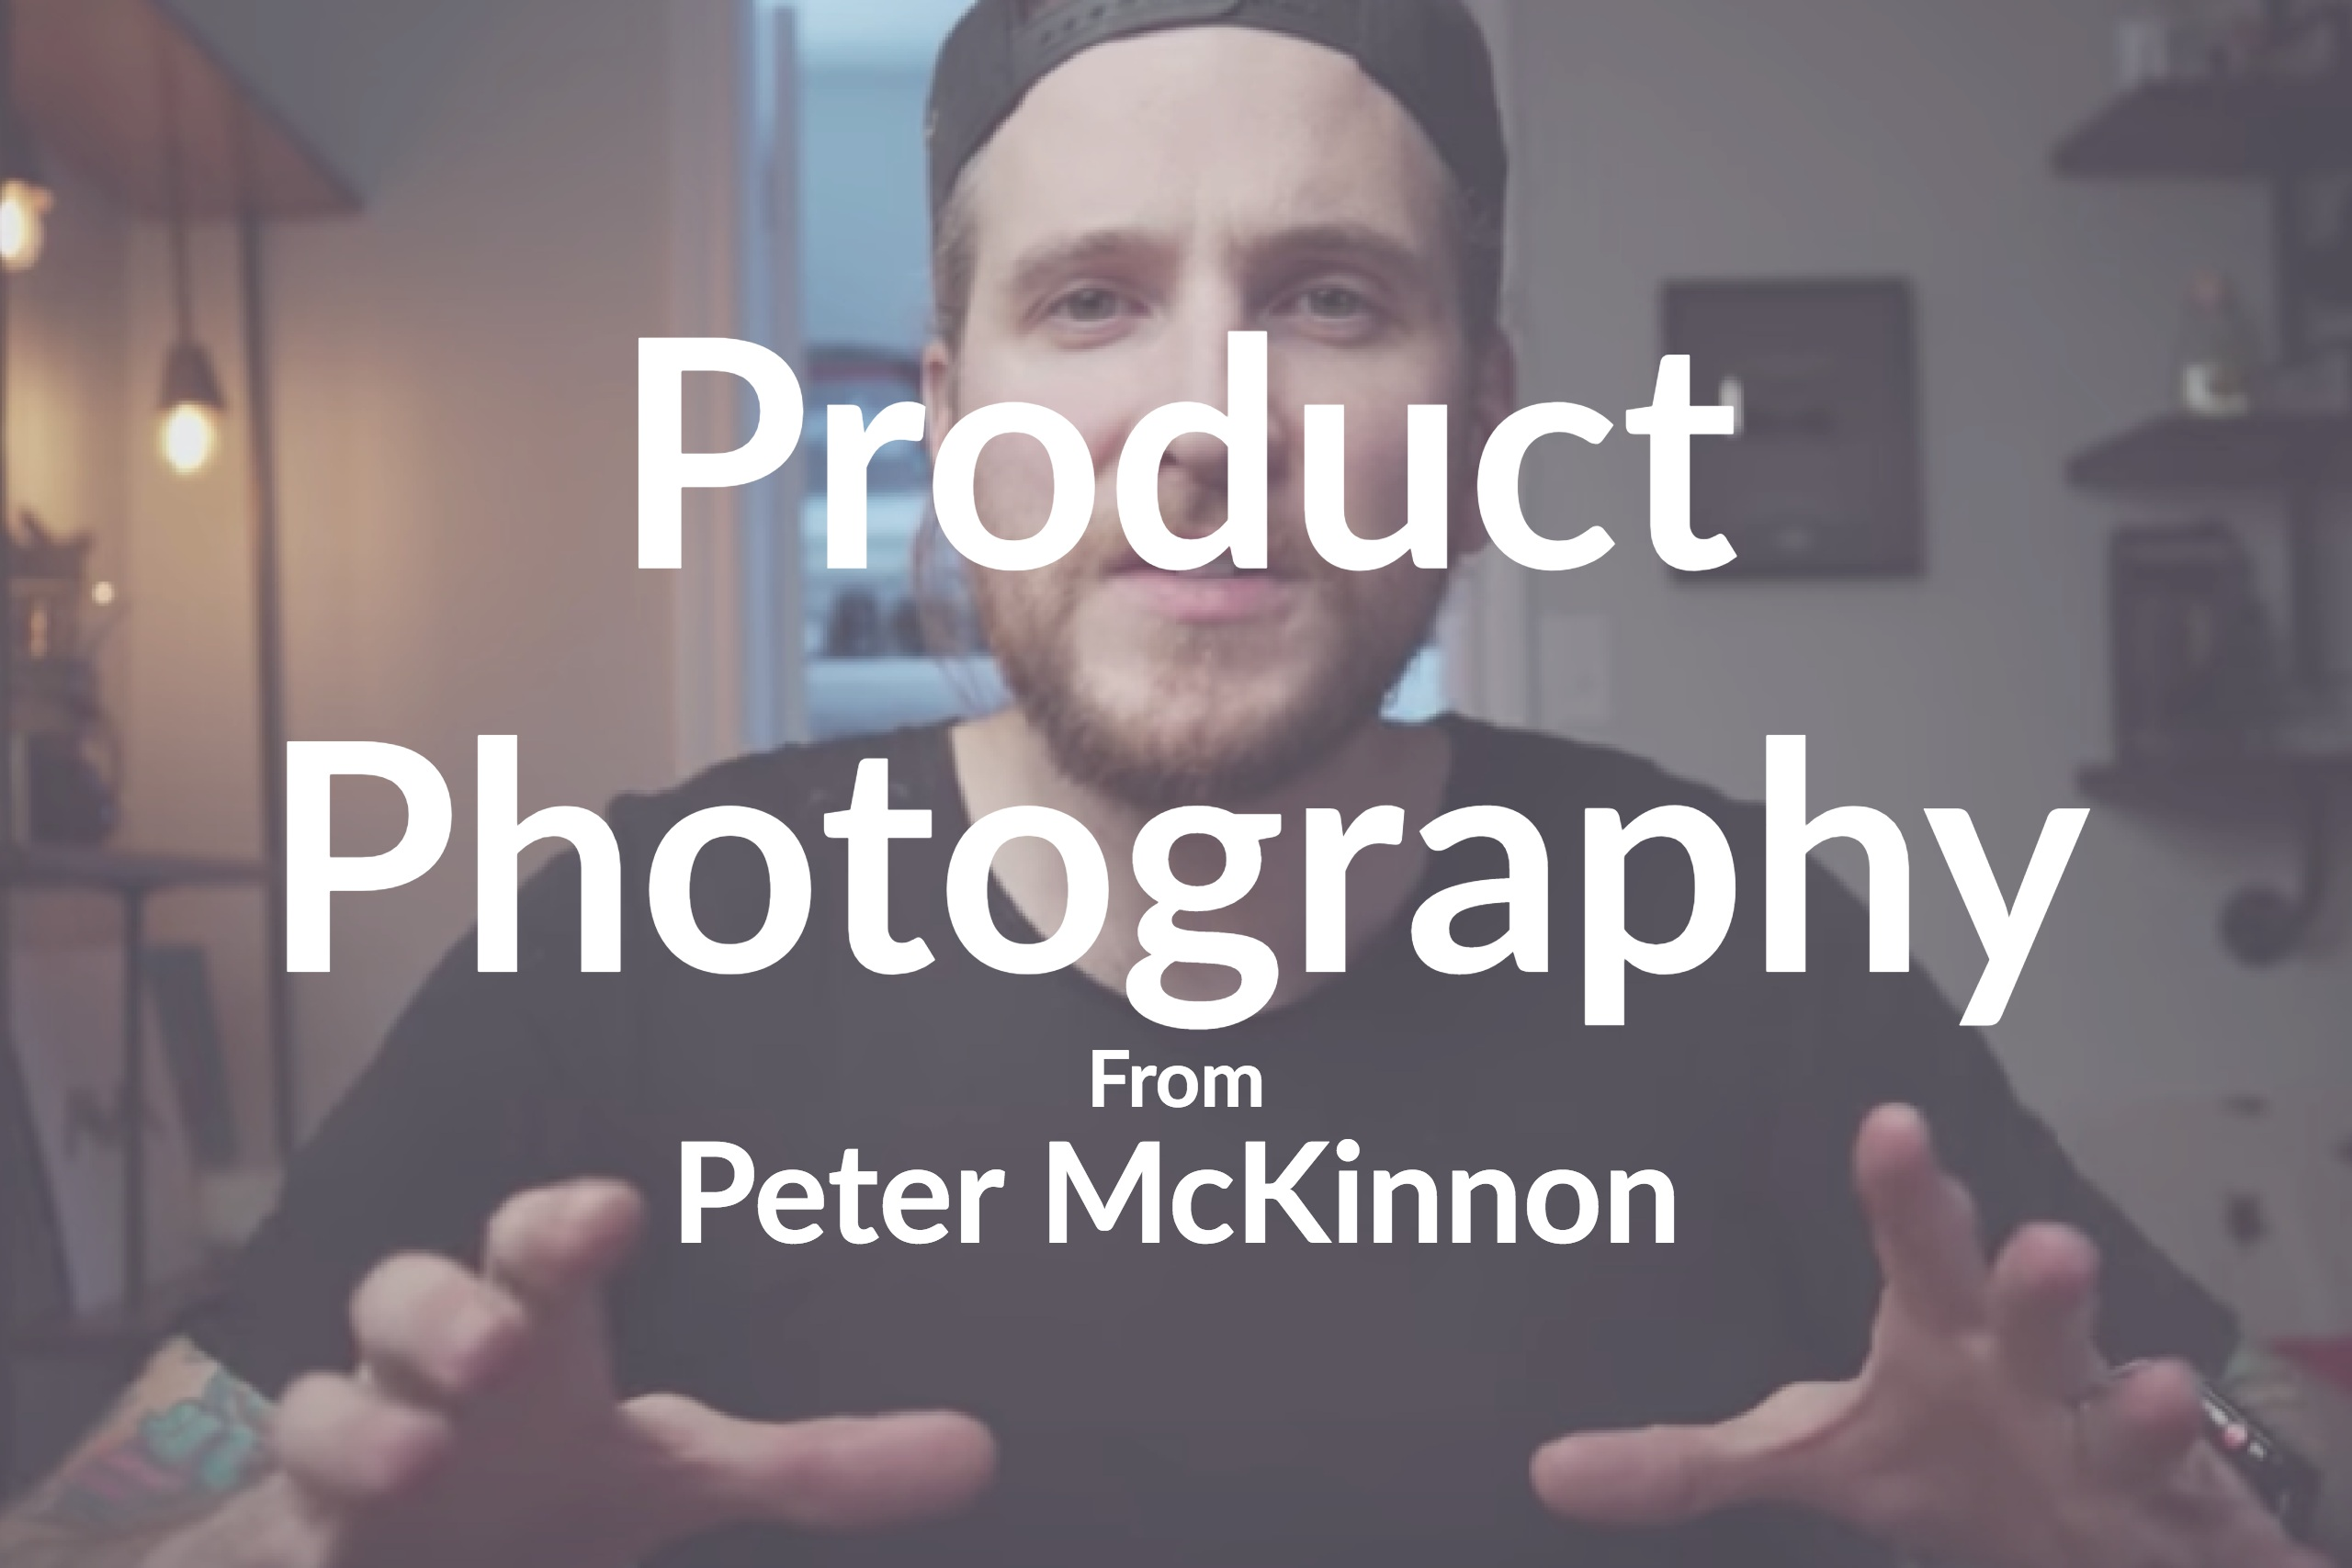 Product Photography: Tips From Peter McKinnon